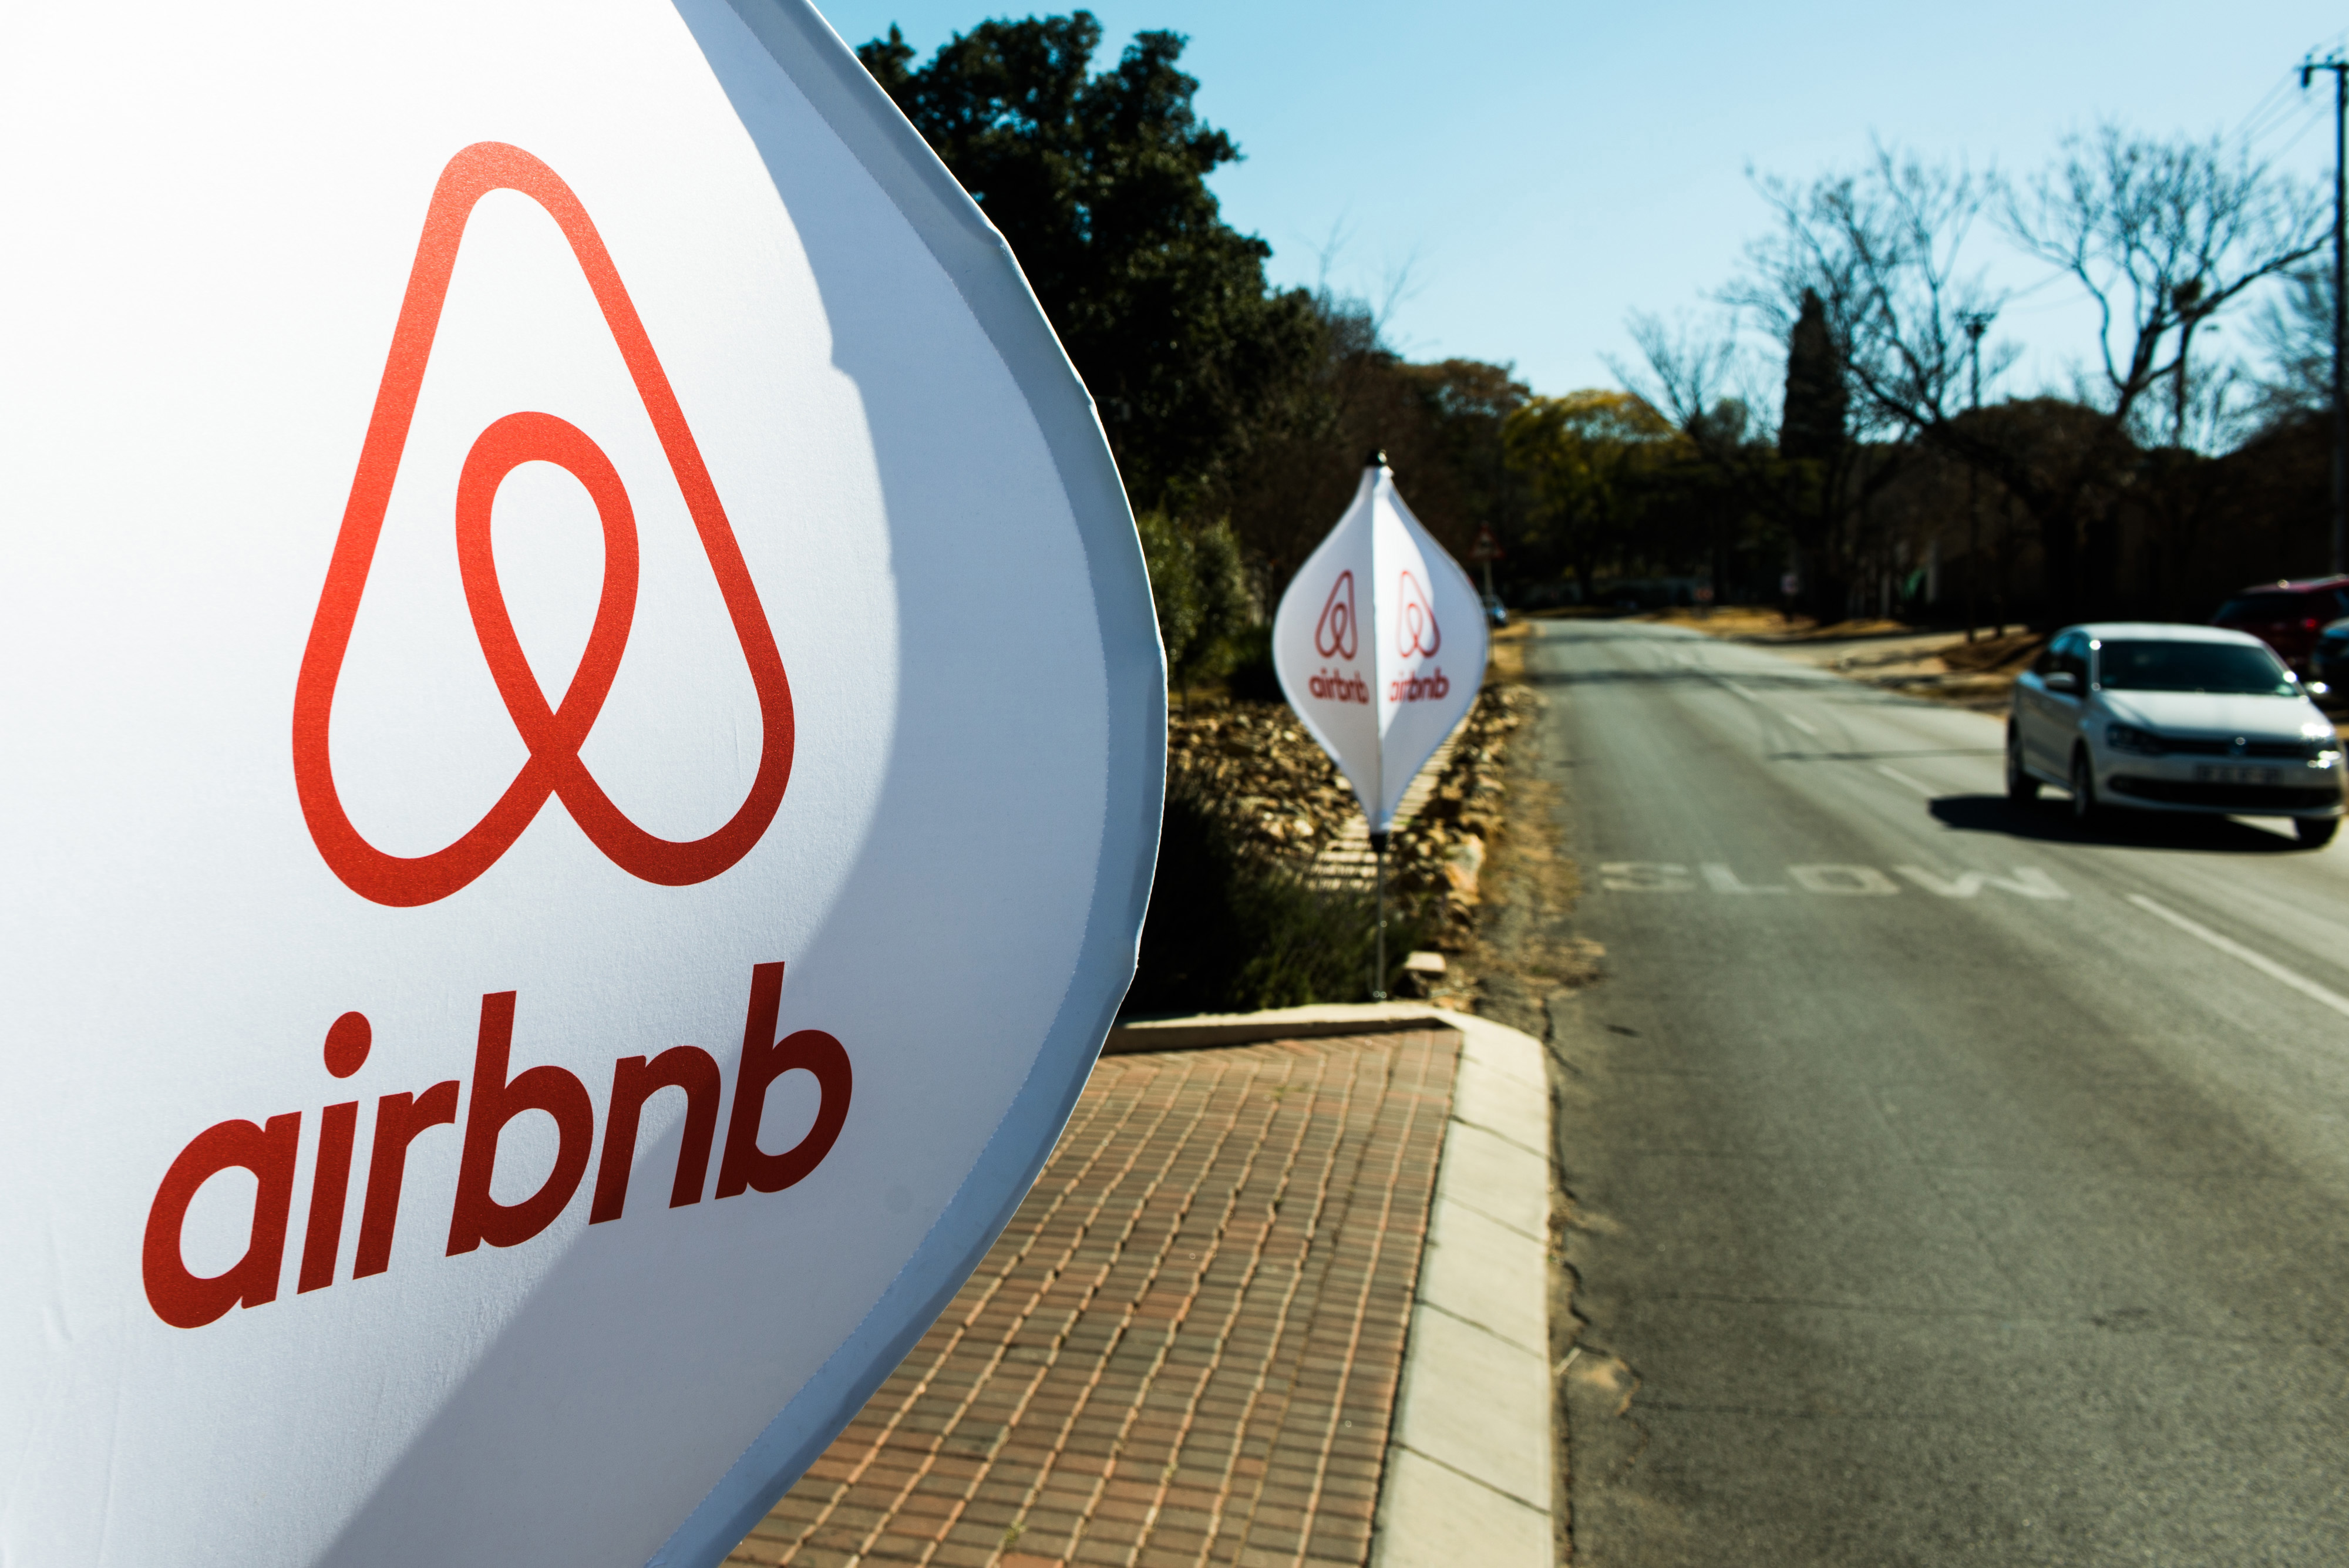 Renting an Airbnb in Massachusetts? Here's what you should know about the state's new short-term rental law.